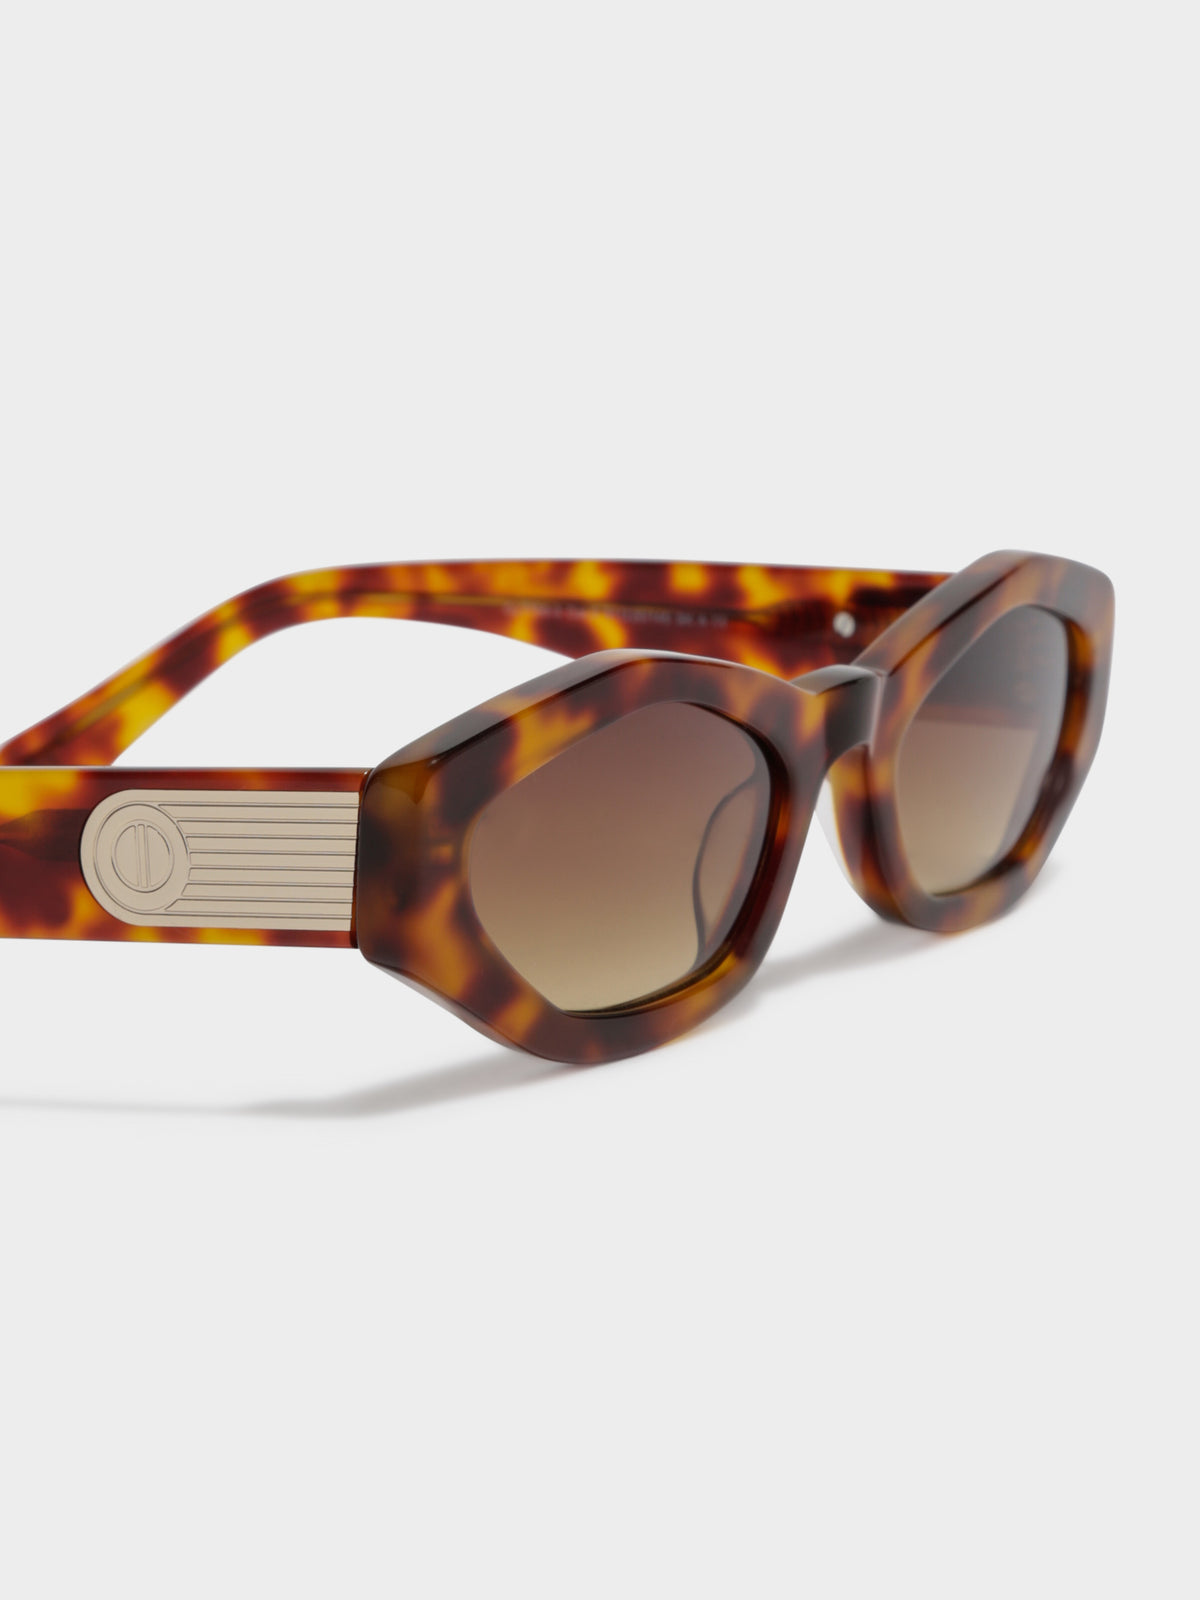 CL7759 Caremilly Tortoise Sunglasses in Brown Tortoiseshell